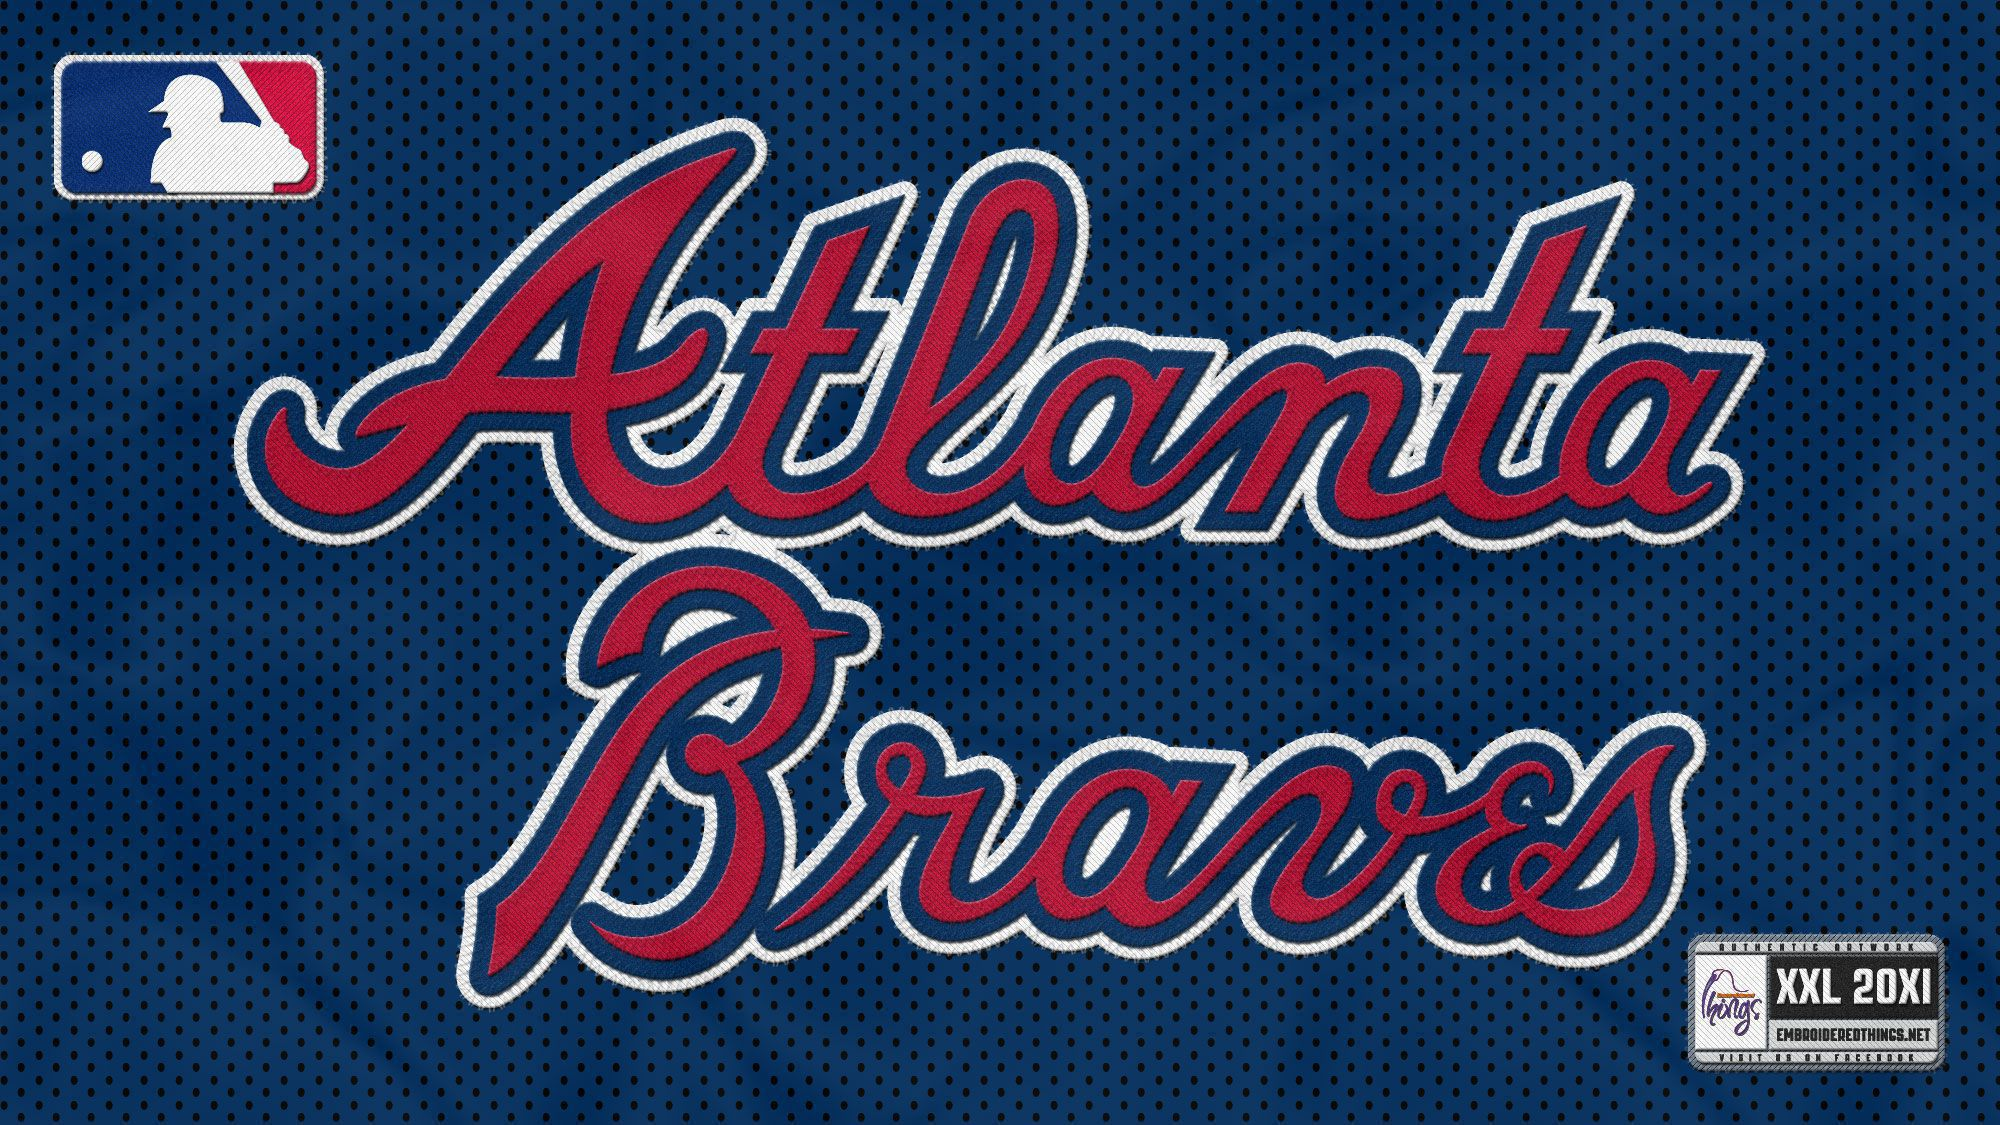 Atlanta Braves Wallpaper Pack